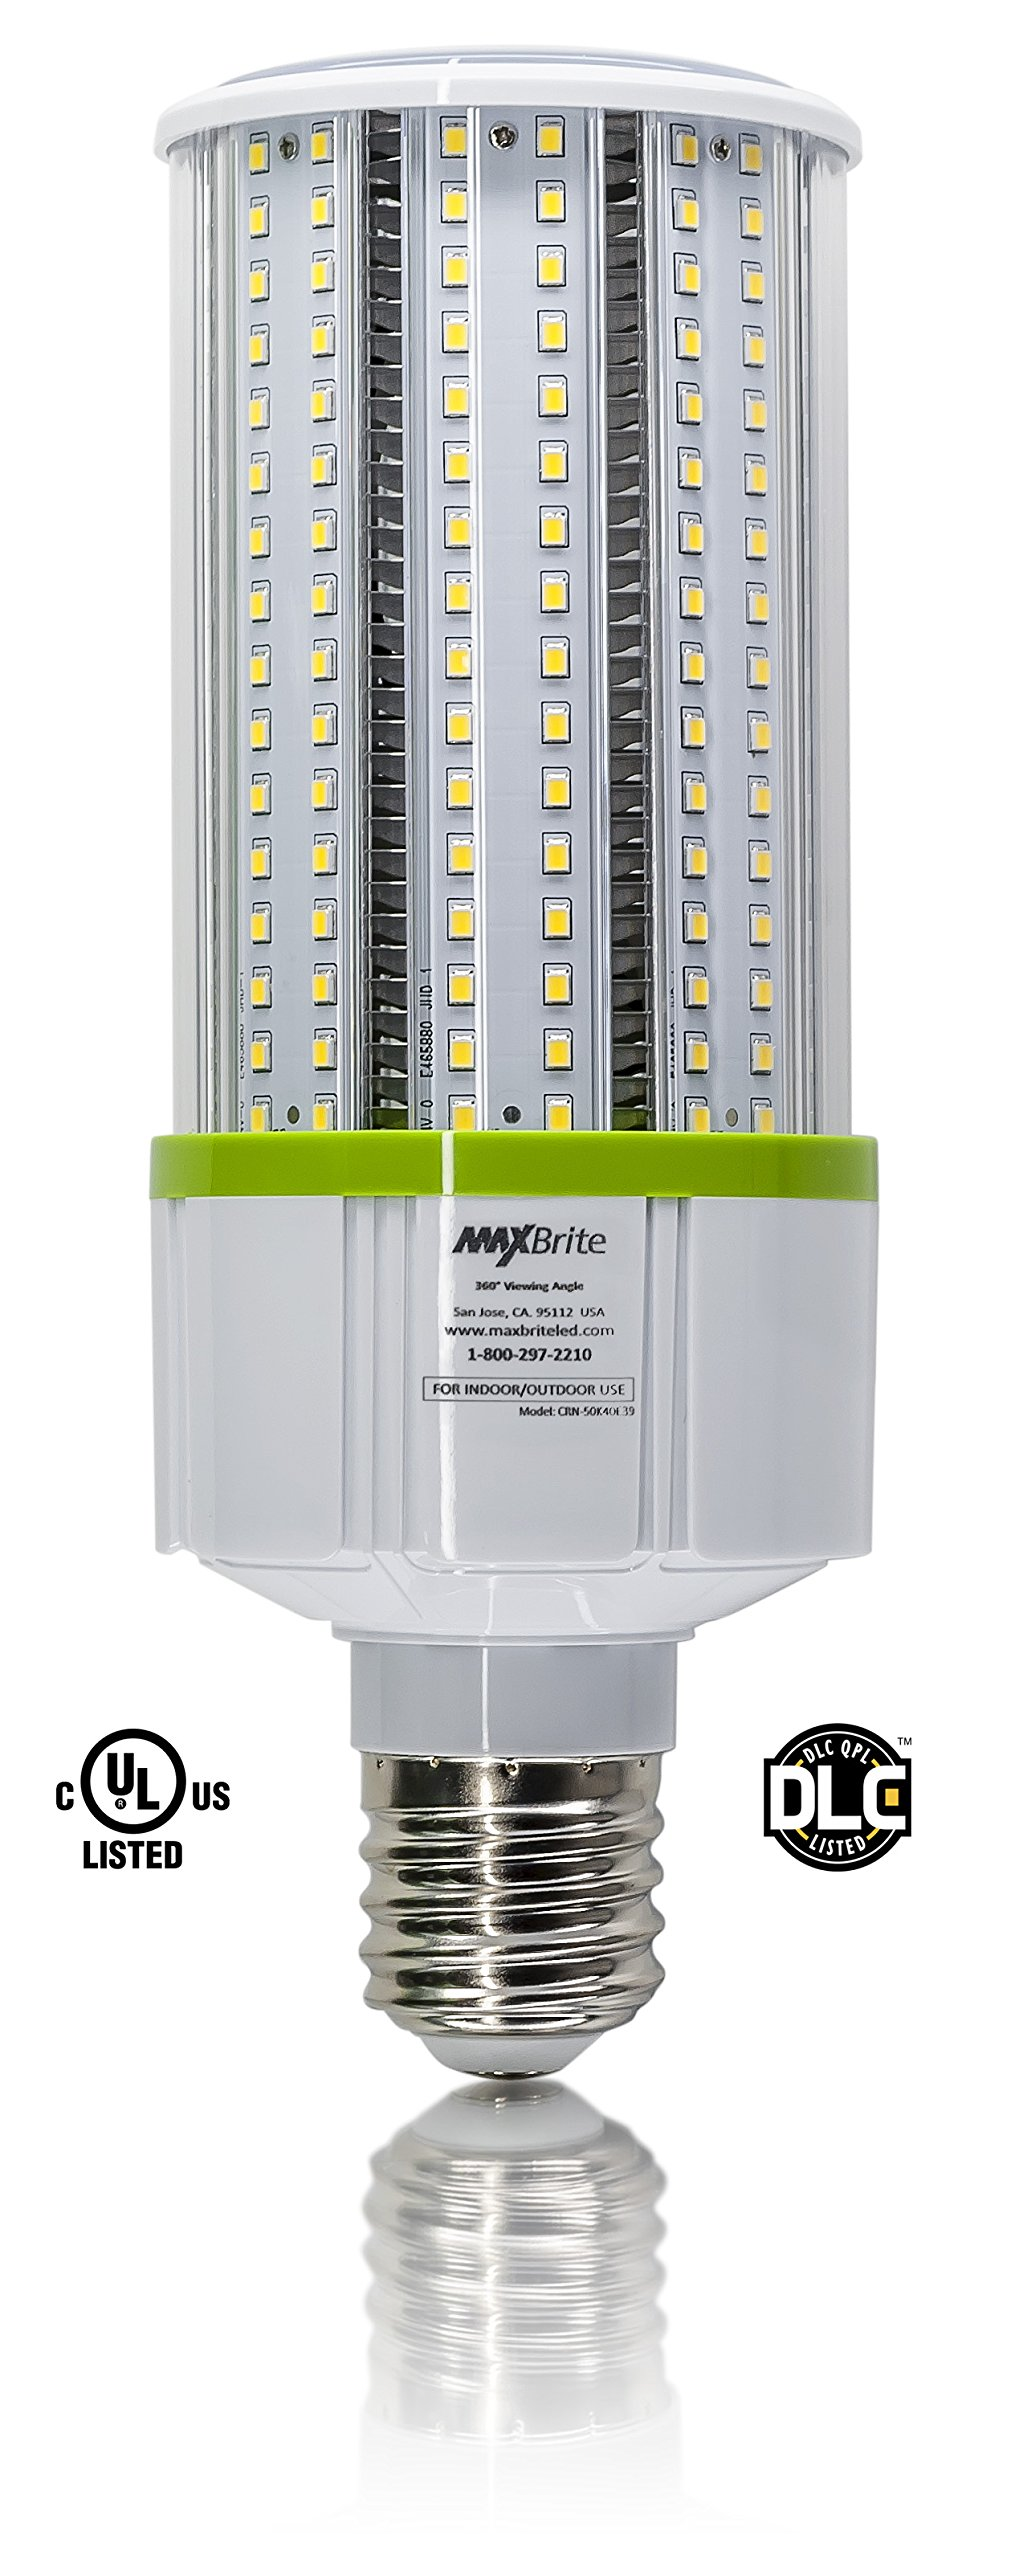 40W LED CORN LIGHT BULB 5000K Replaces 400W, 4,600 lumens Mogul Base E39, 100-277V AC UL/cUL DLC